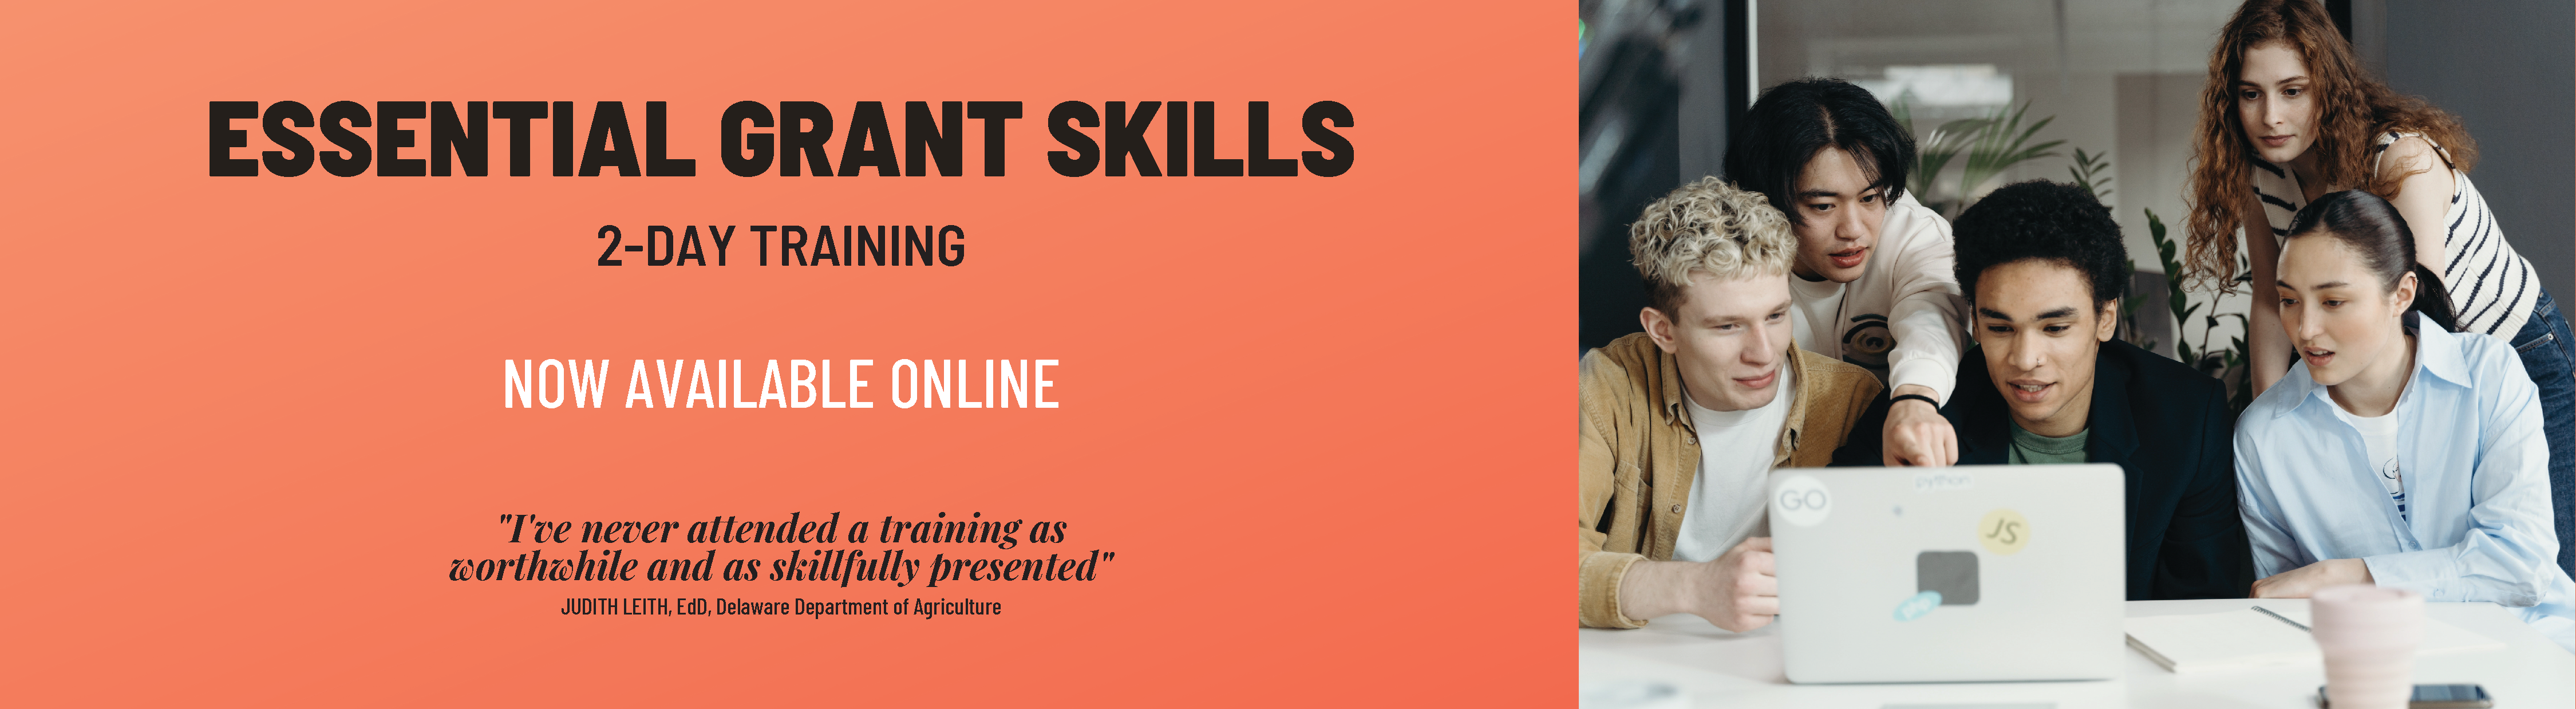 """Essential Grant Skills: 2-Day Training. Now available online. """"I've never attended a training as worthwhile and as skillfully presented."""" Judith Leith, EdE, Delaware Dept of Agriculture"""